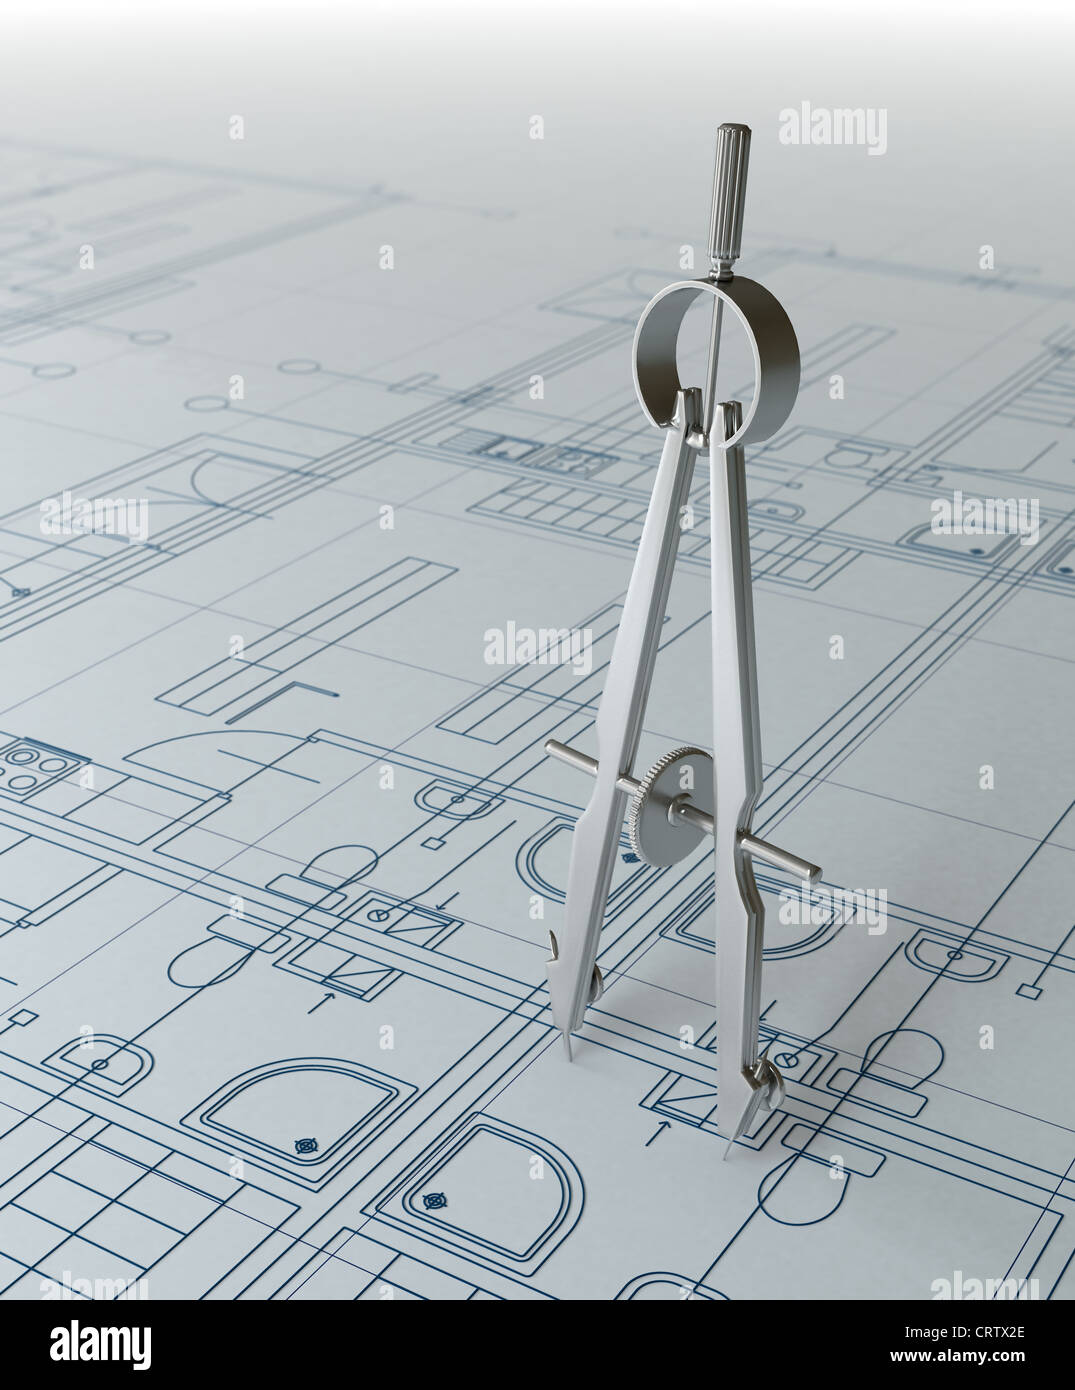 Compass and architectural draft - Stock Image